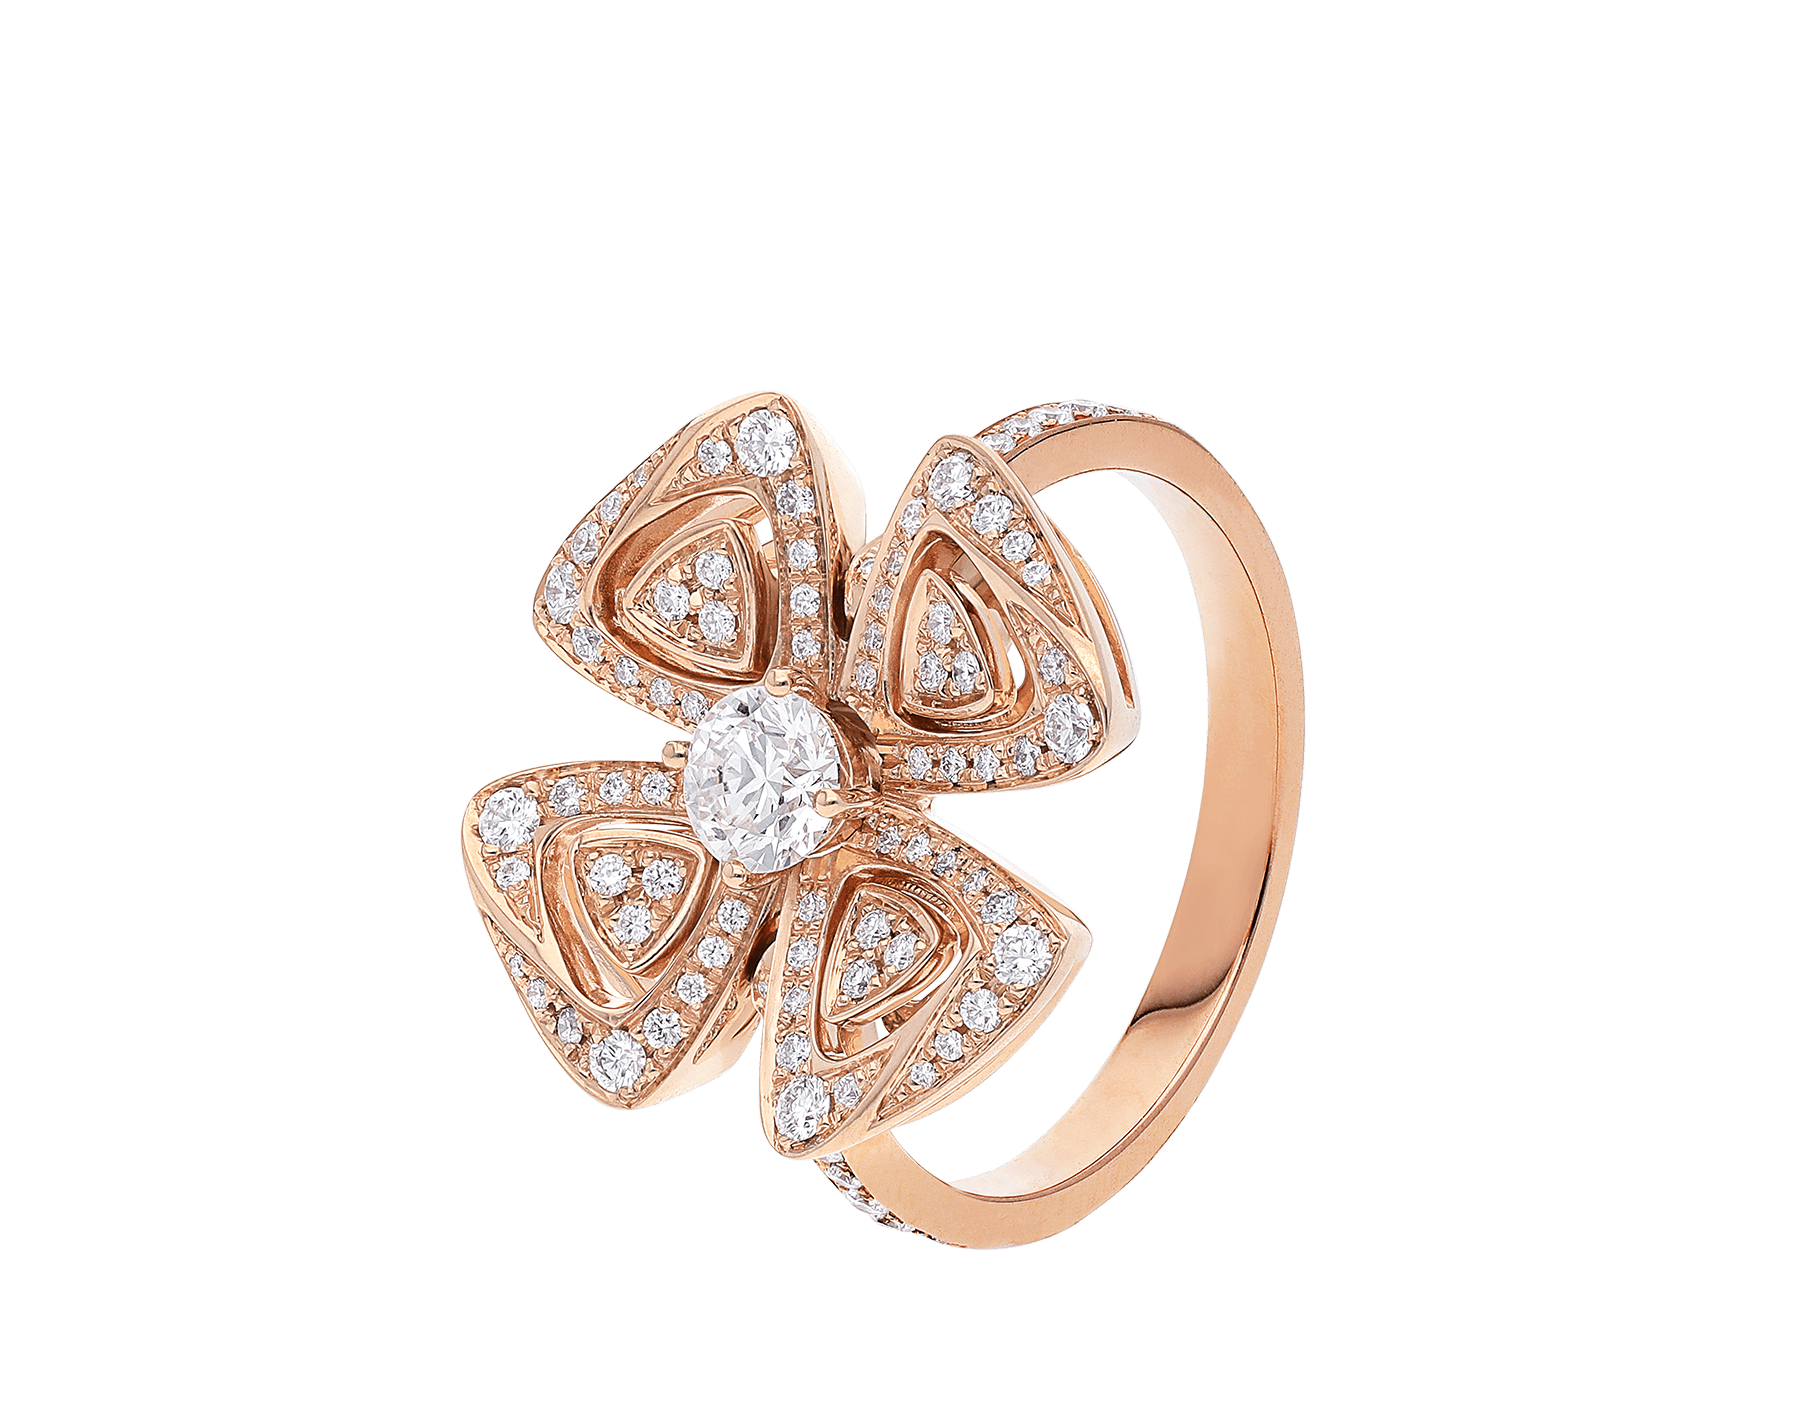 Fiorever 18 kt rose gold ring set with a central diamond (0.30 ct) and pavé diamonds (0.36 ct) AN858504 image 1